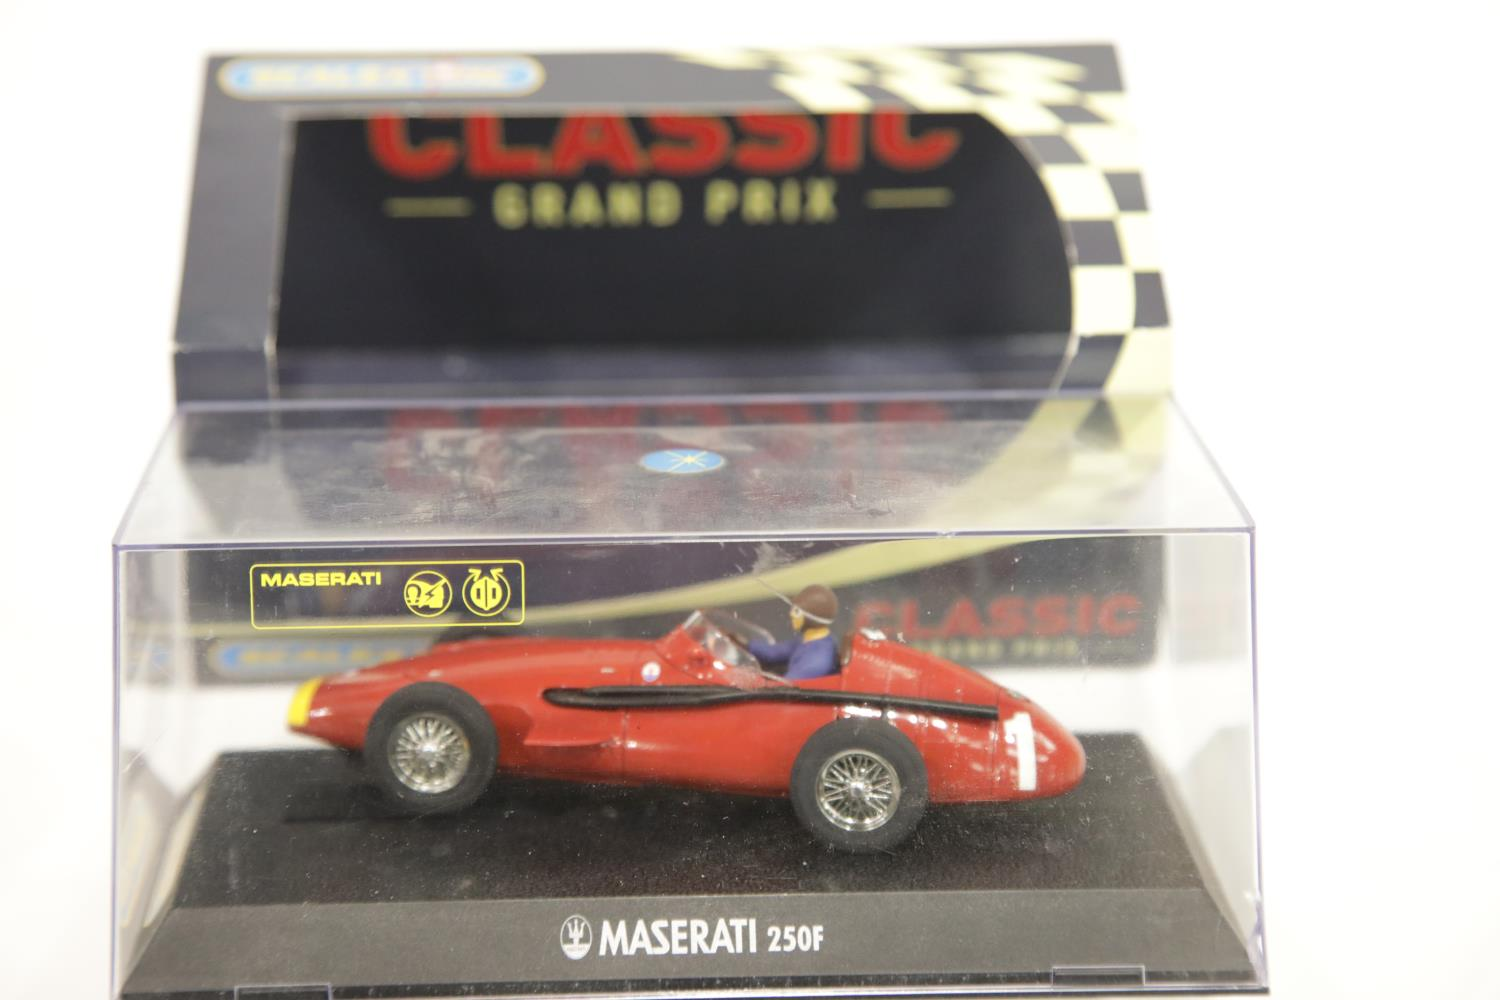 Lot 683 - Scalextric Grand Prix Classics C2551 Maserati 250F 1957. P&P Group 1 (£14+VAT for the first lot